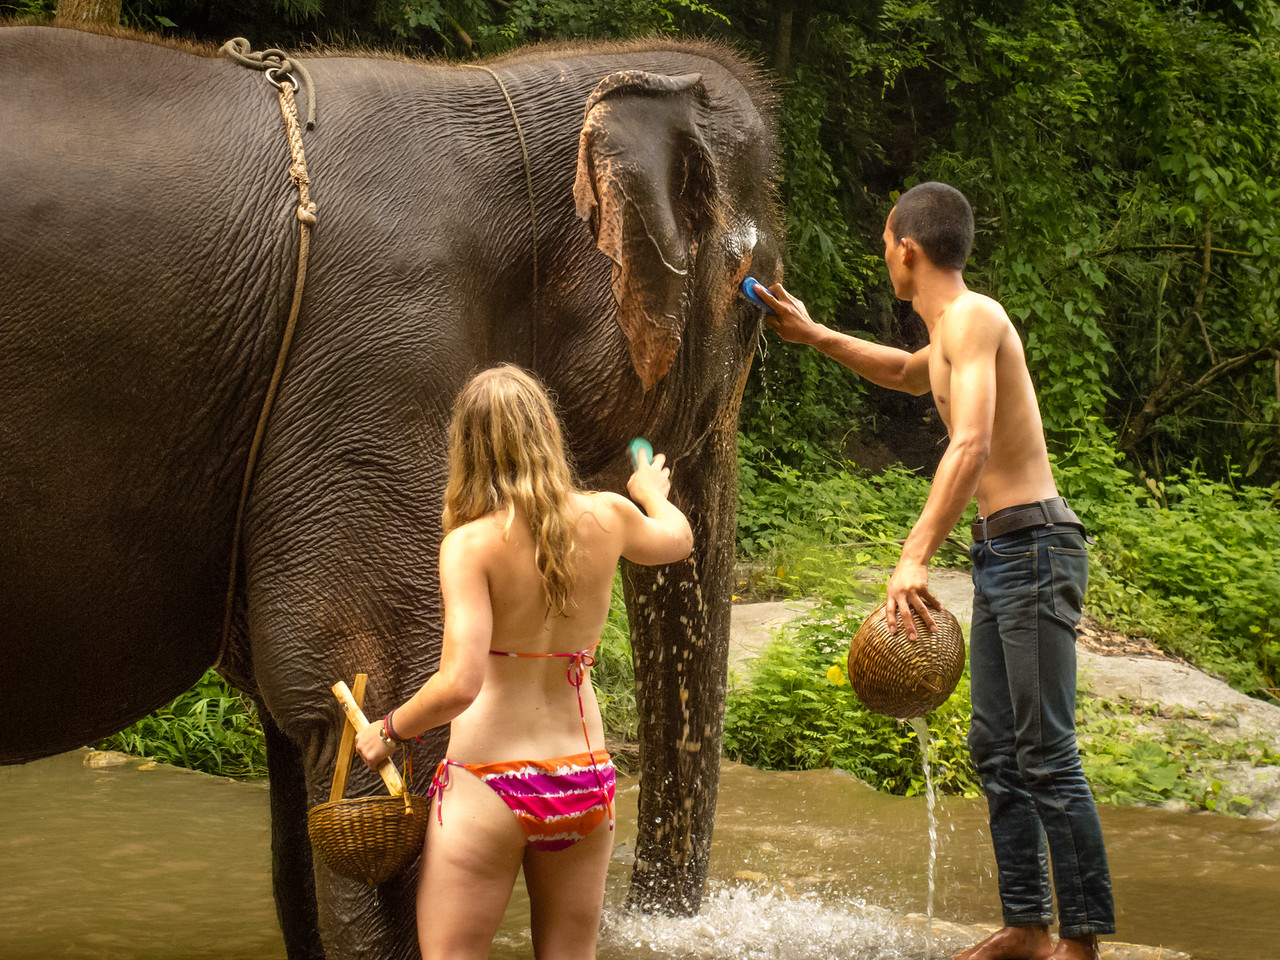 Girl in Bikini Bathing an Elephant in Thailand